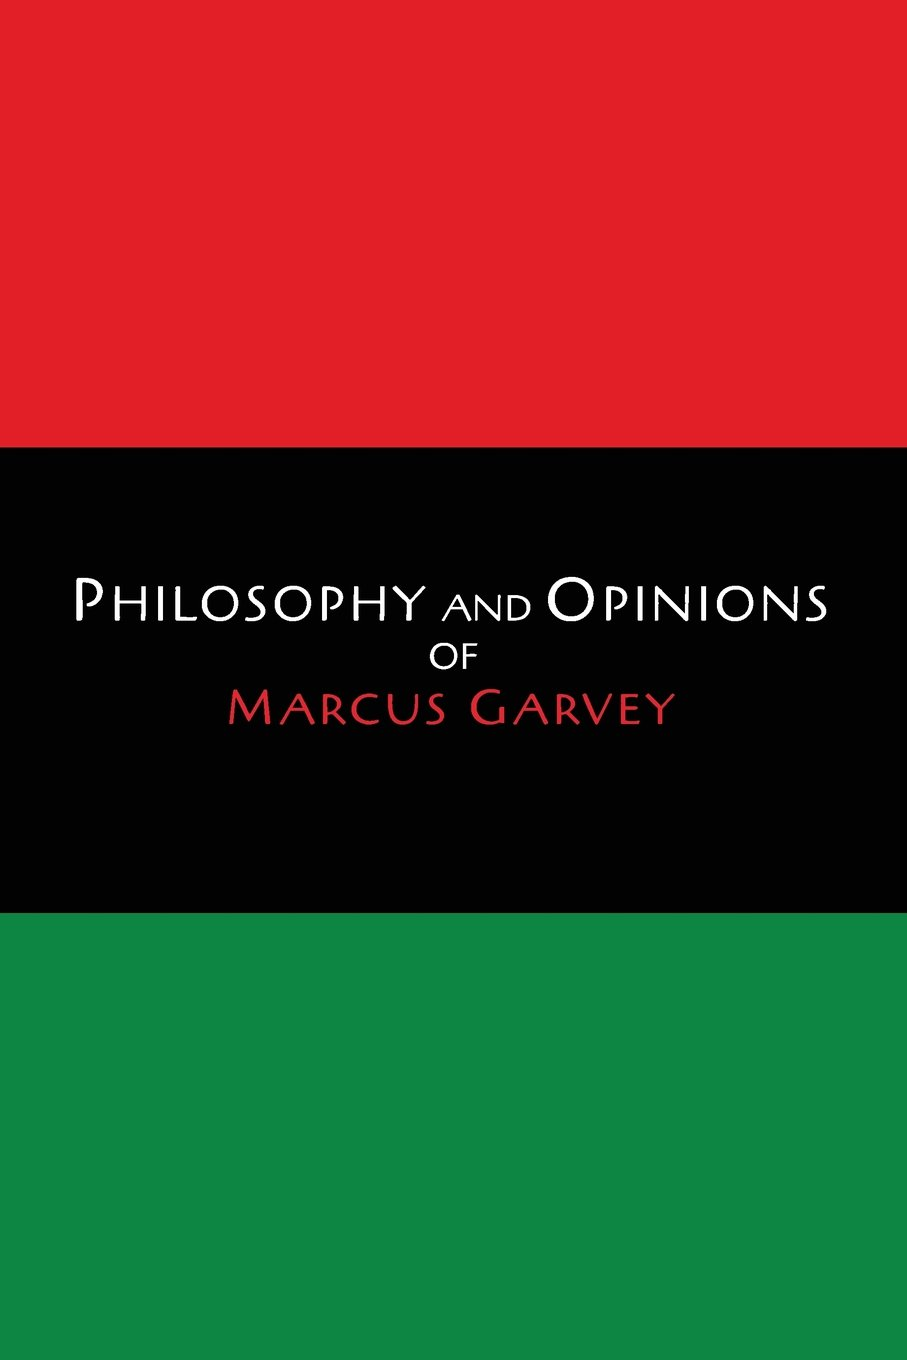 philosophy and opinions of marcus garvey volumes i ii in one philosophy and opinions of marcus garvey volumes i ii in one volume marcus garvey amy jacques garvey 9781614277309 com books